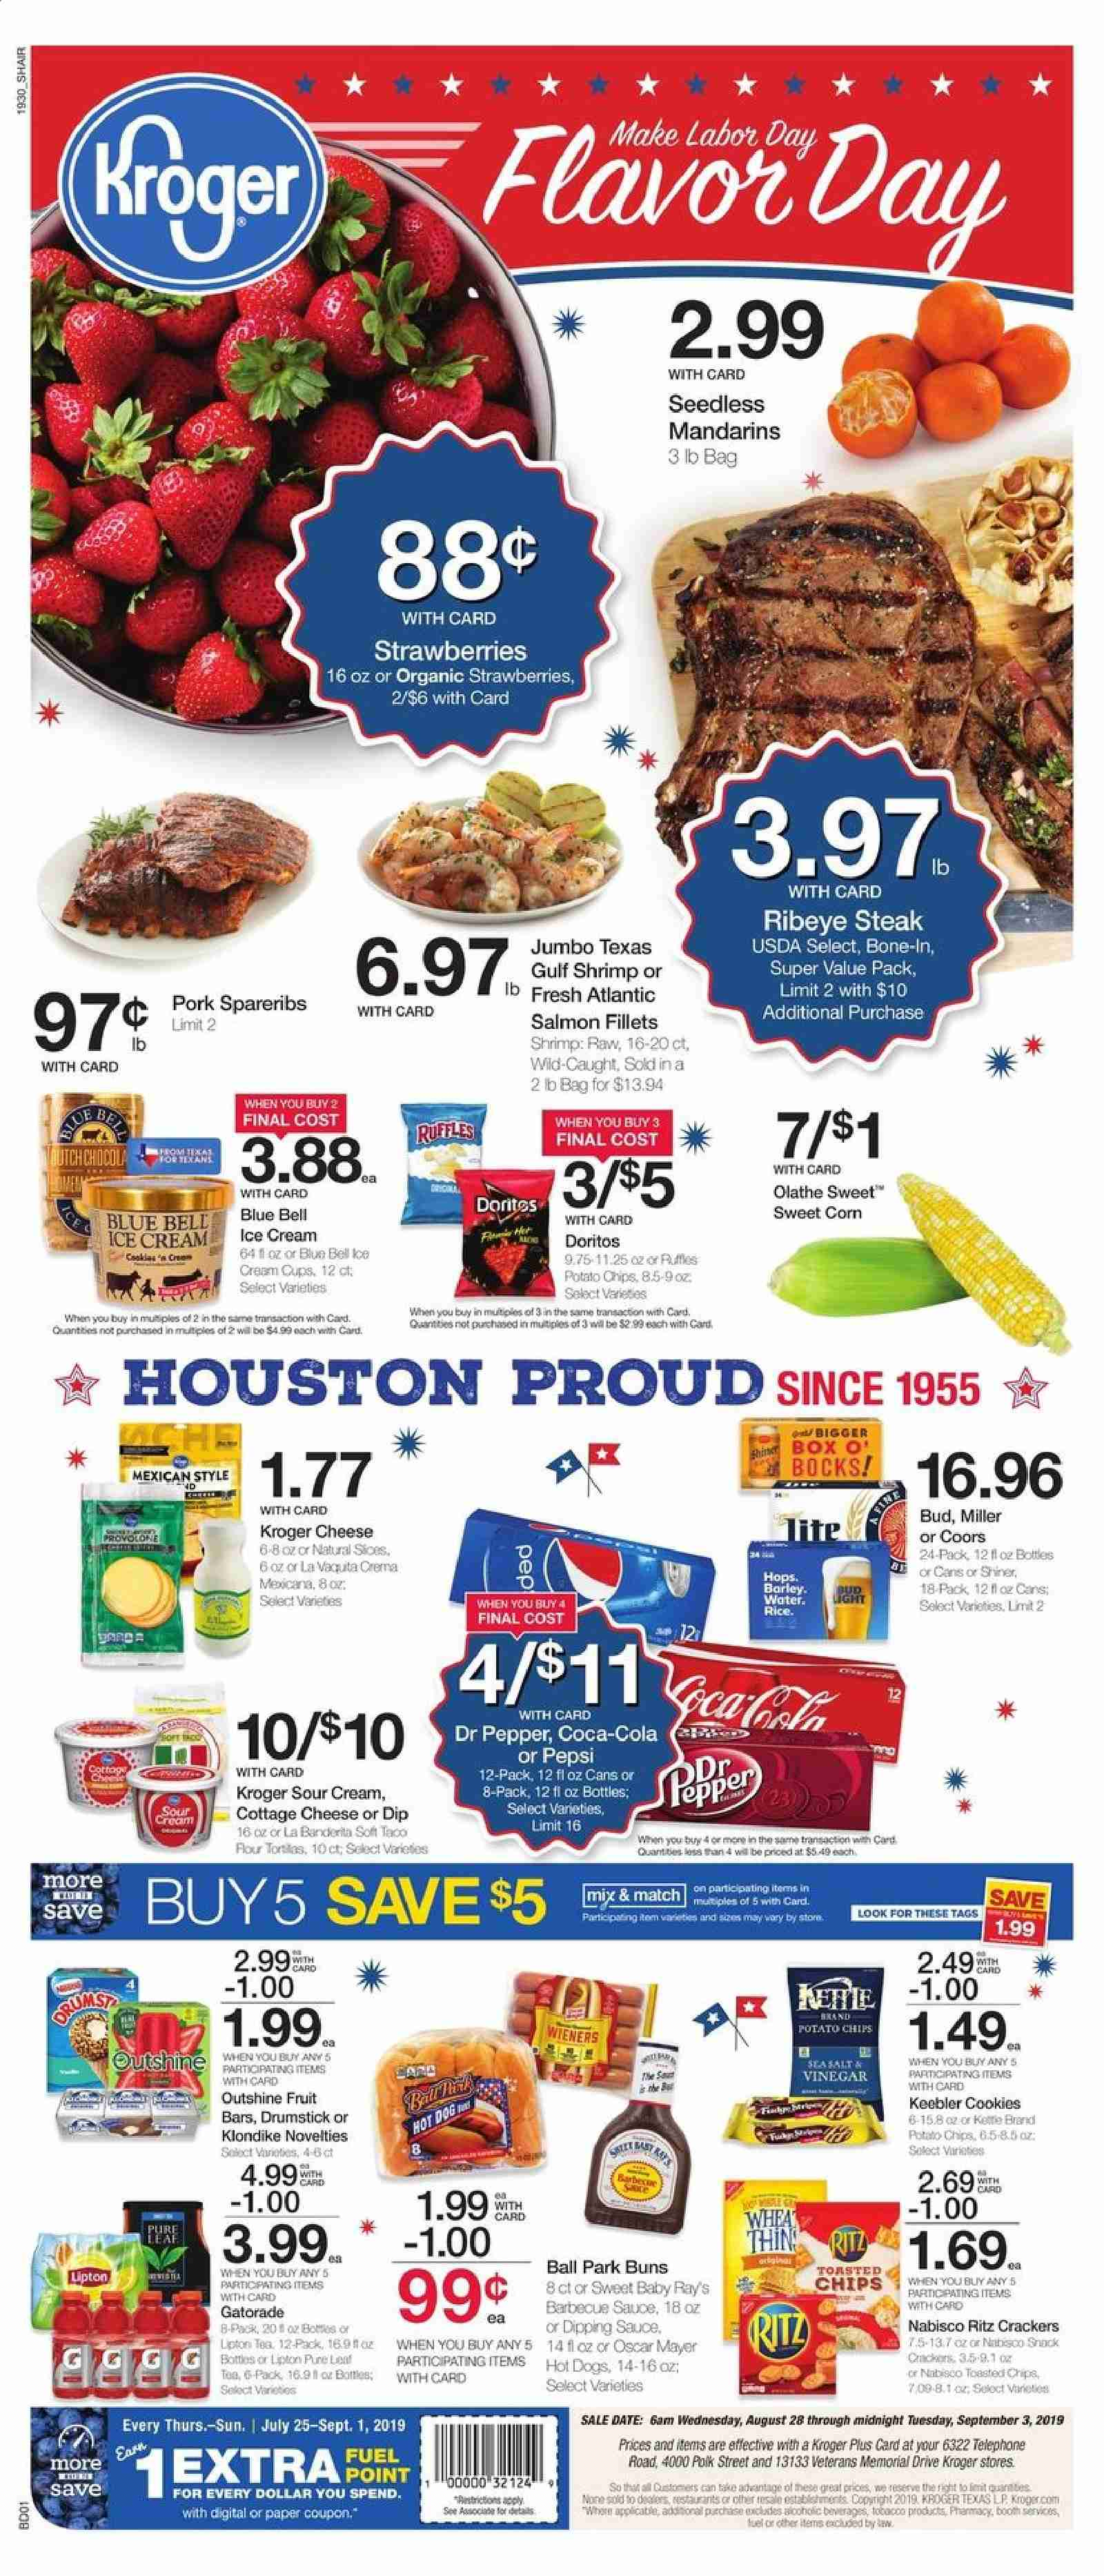 Kroger Flyer - 08.28.2019 - 09.03.2019 - Sales products - bag, barley, box, coca-cola, cookies, corn, cottage cheese, crackers, doritos, fuel, rice, salmon, shrimp, sour cream, strawberries, tea, vinegar, hot dog, ice cream, polk, pork meat, provolone, pepsi, organic, chips, steak, cheese, pepper, snack, ritz, lipton, sauce, ball, fruit, miller, coors, shiner, dr. pepper, cream. Page 1.